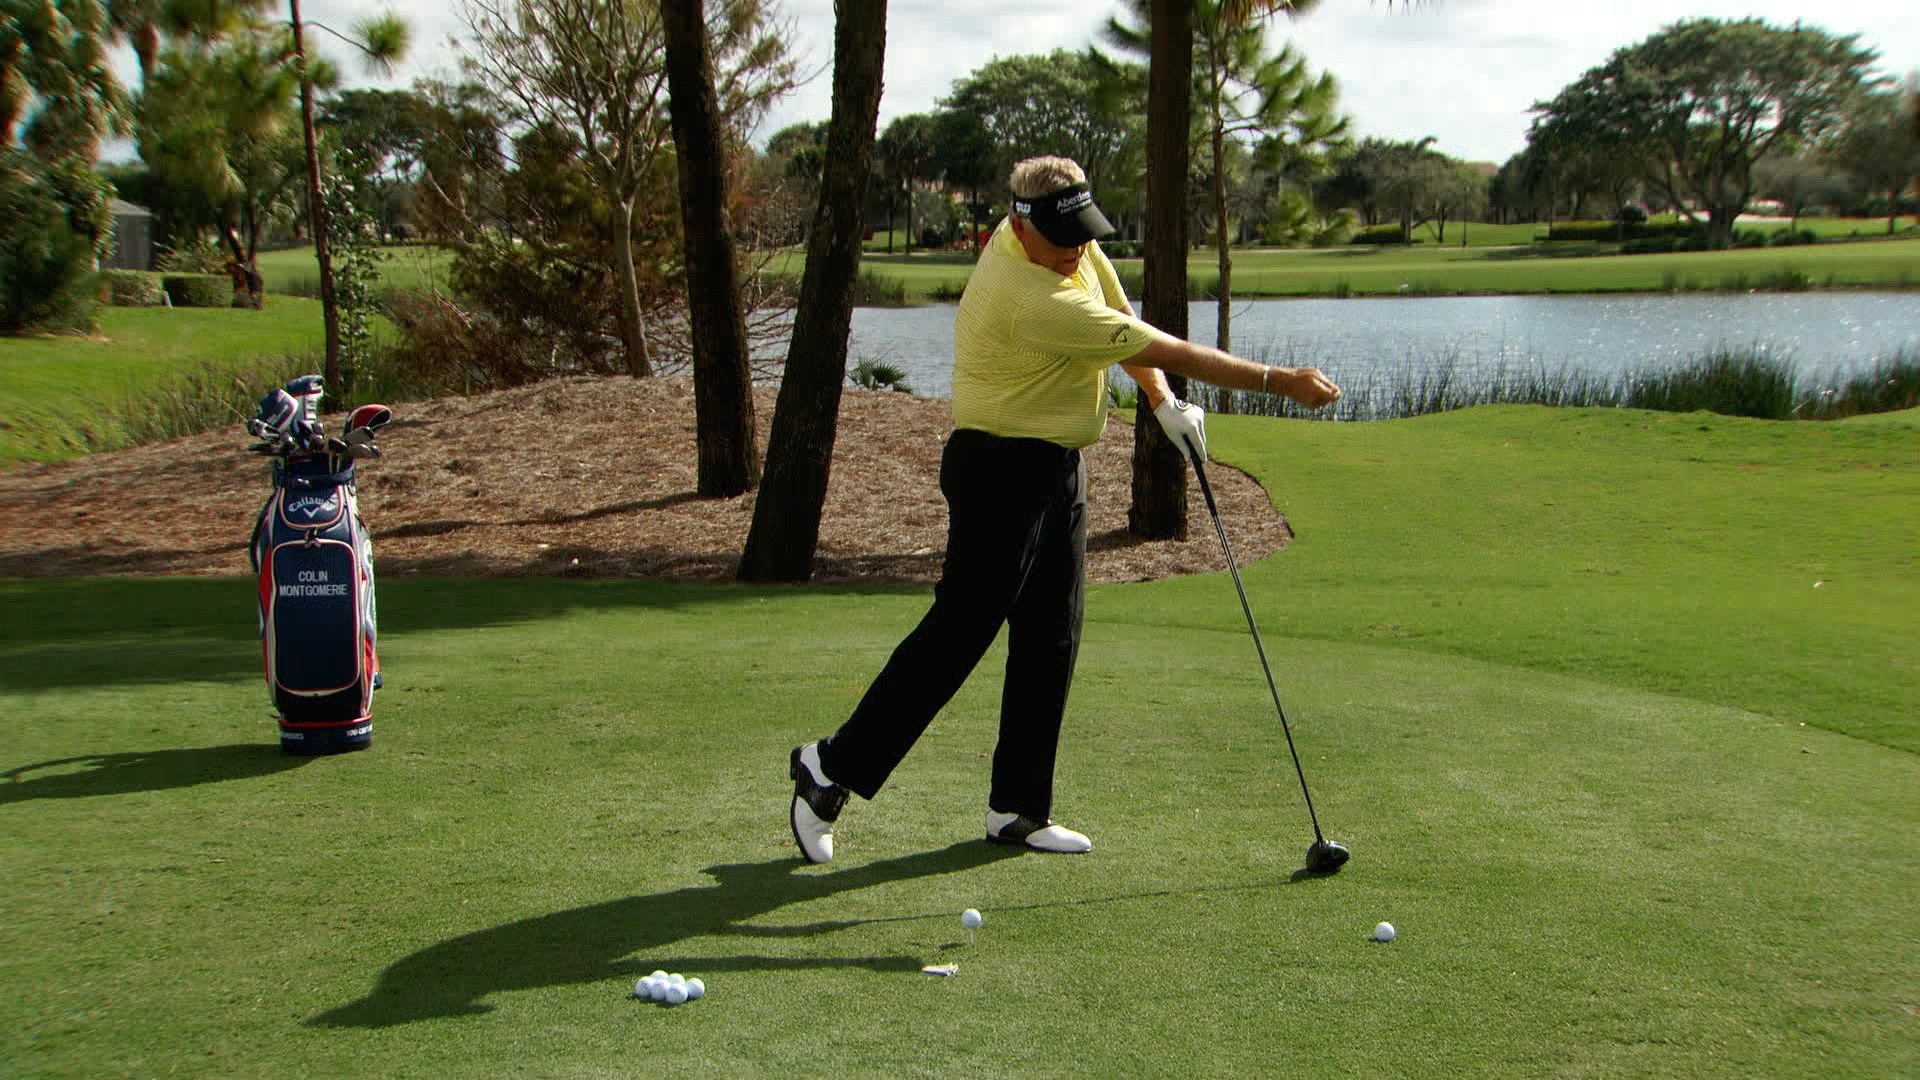 golf-driving-tips-how-to-drive-a-golf-ball-well